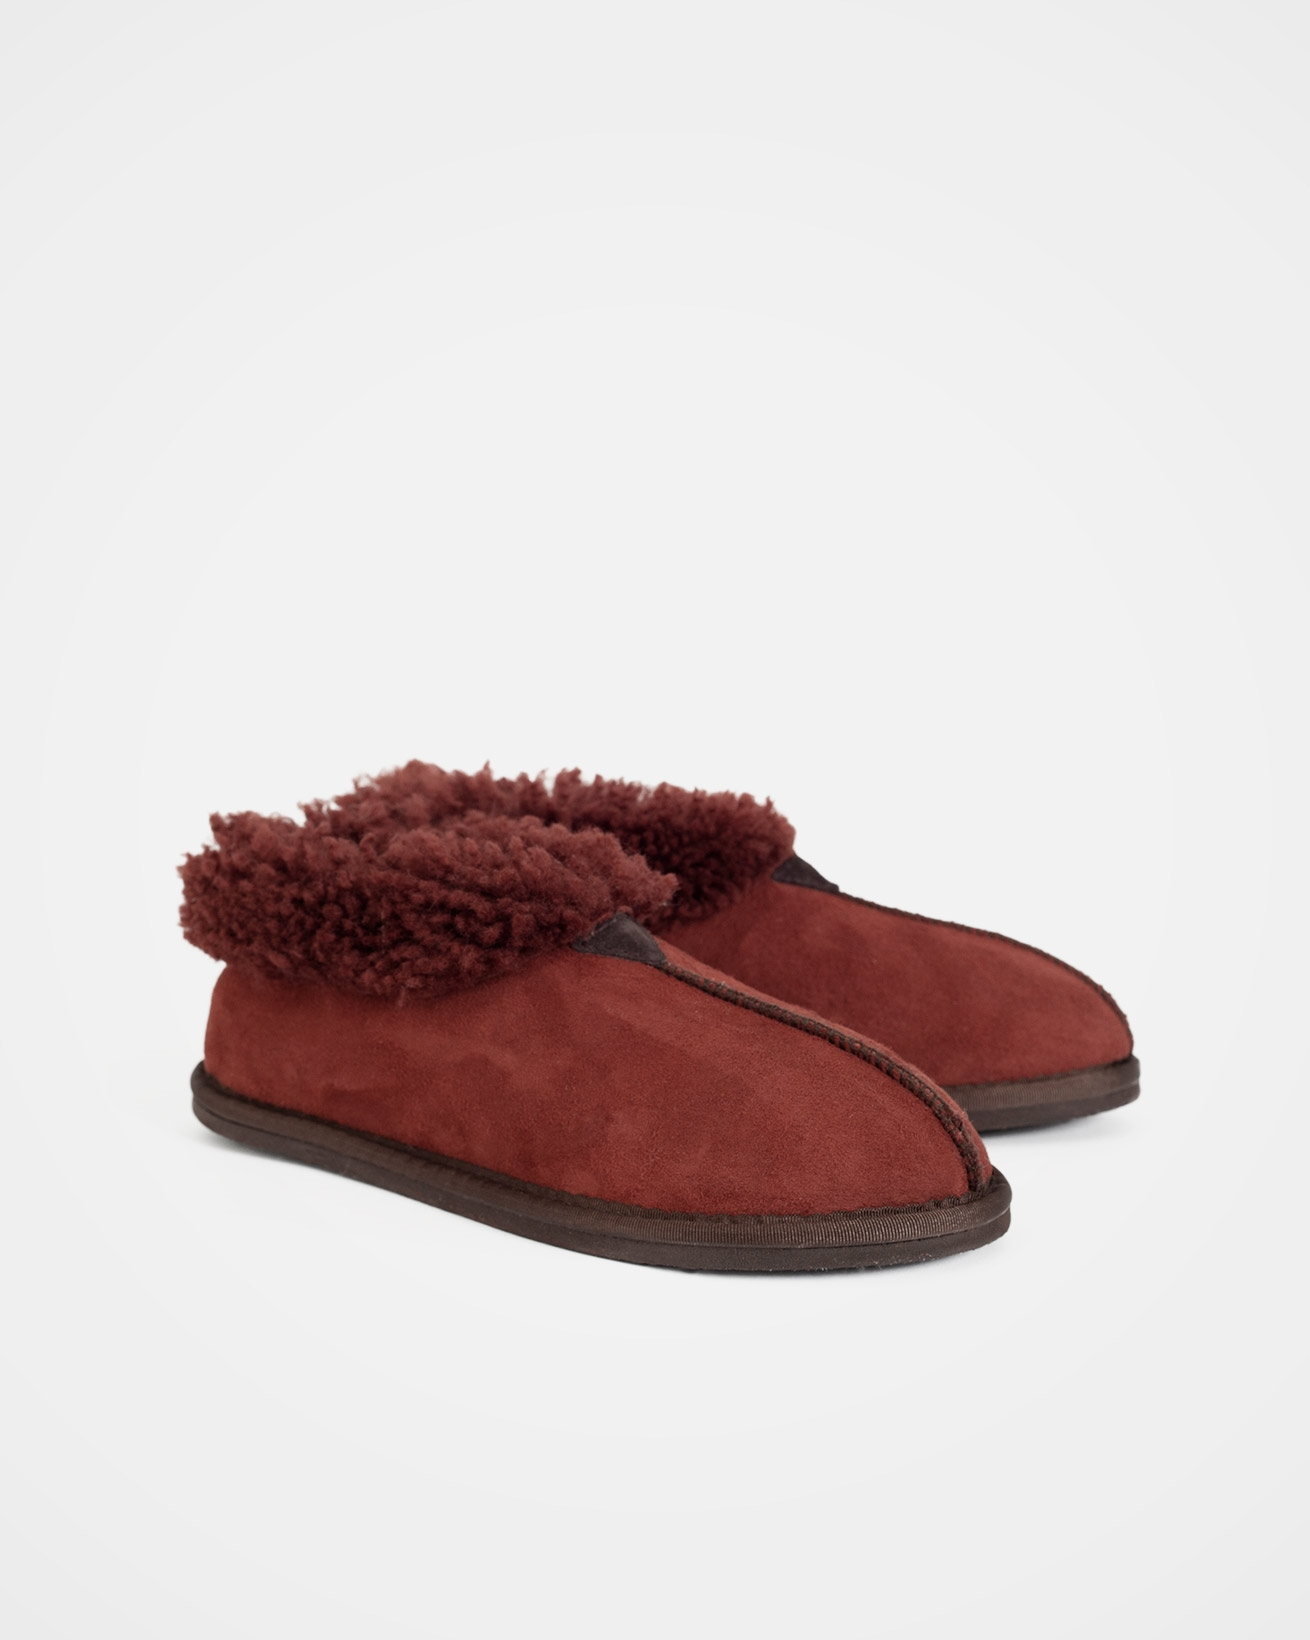 Ladies Sheepskin Bootee Slipper - Size 5 - Conker - 1579